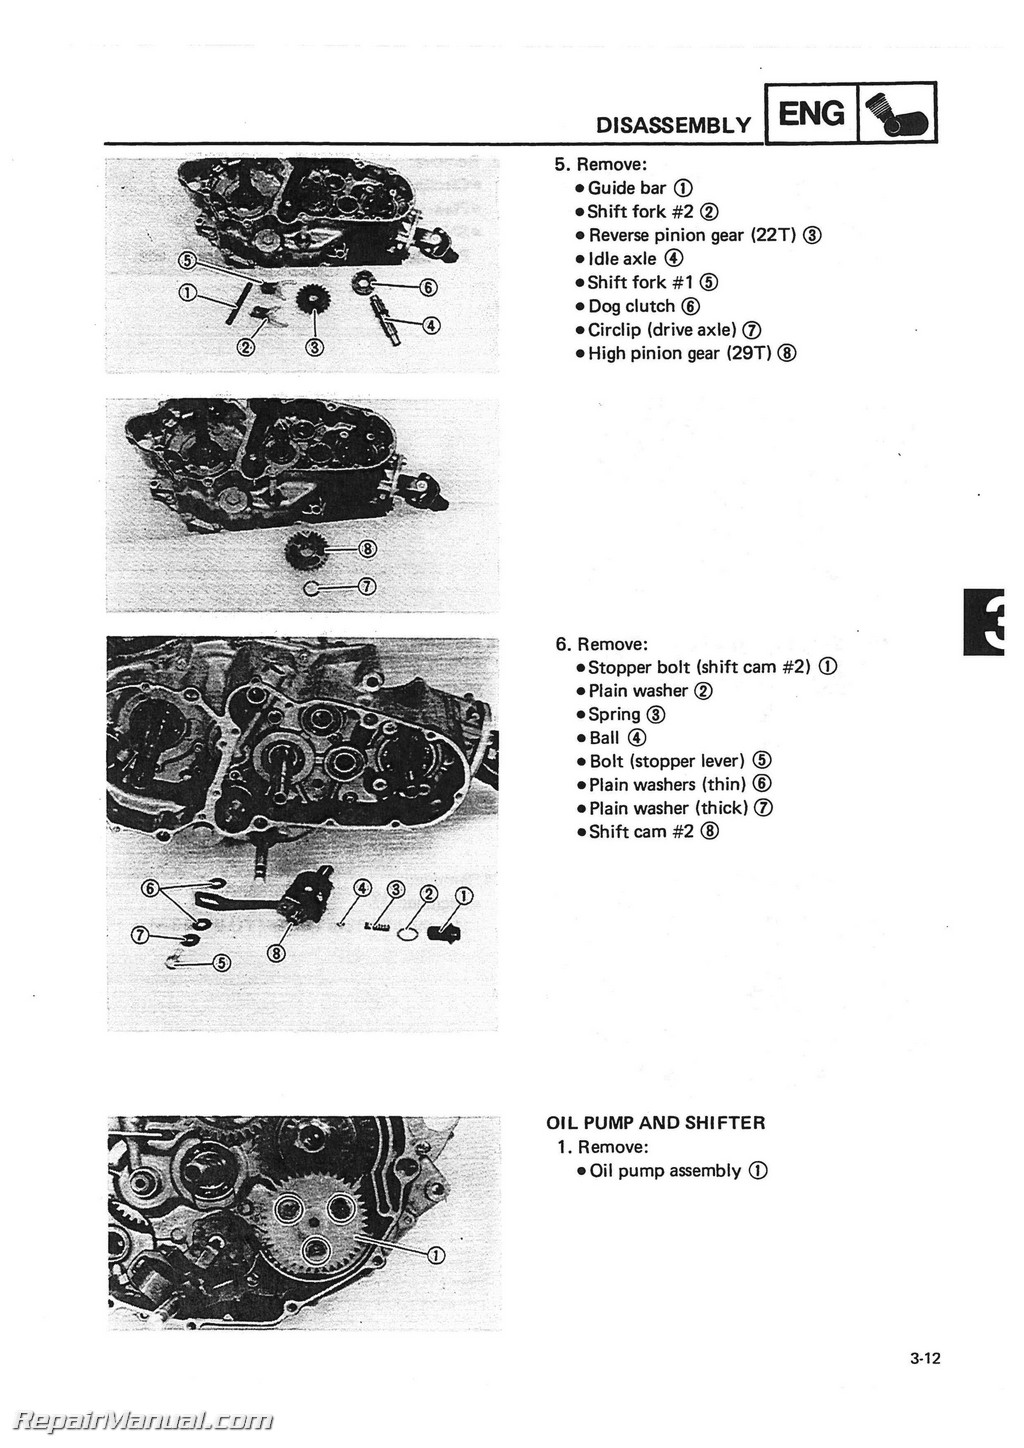 sunl 150 atv wiring diagram toyota camry fuse box install chinese 150cc diagrams www toyskids co for yamaha 250 4 wheeler get free image scooter